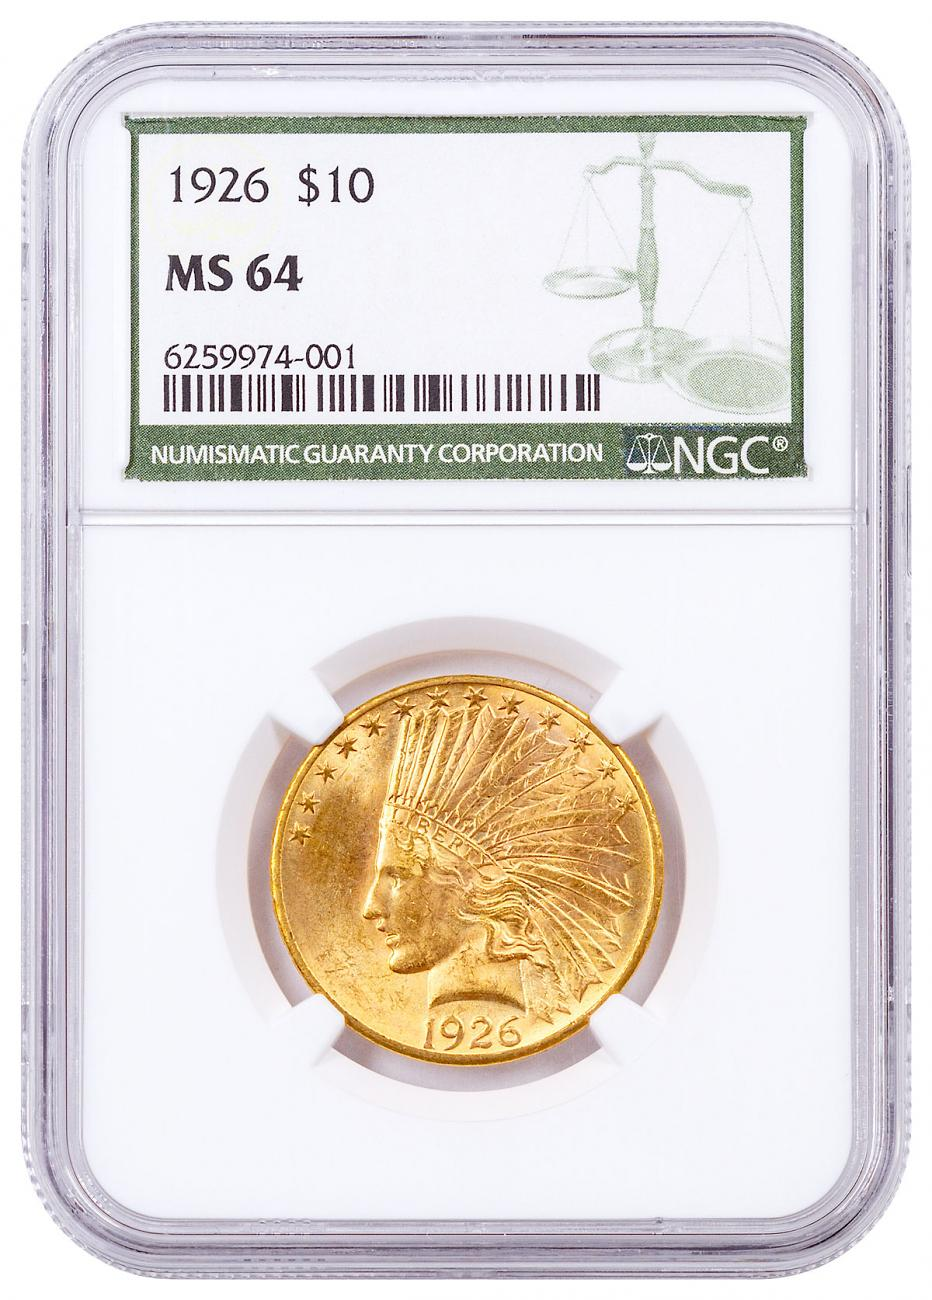 1926-P Indian Head $10 Gold Eagles NGC MS64 Green Label